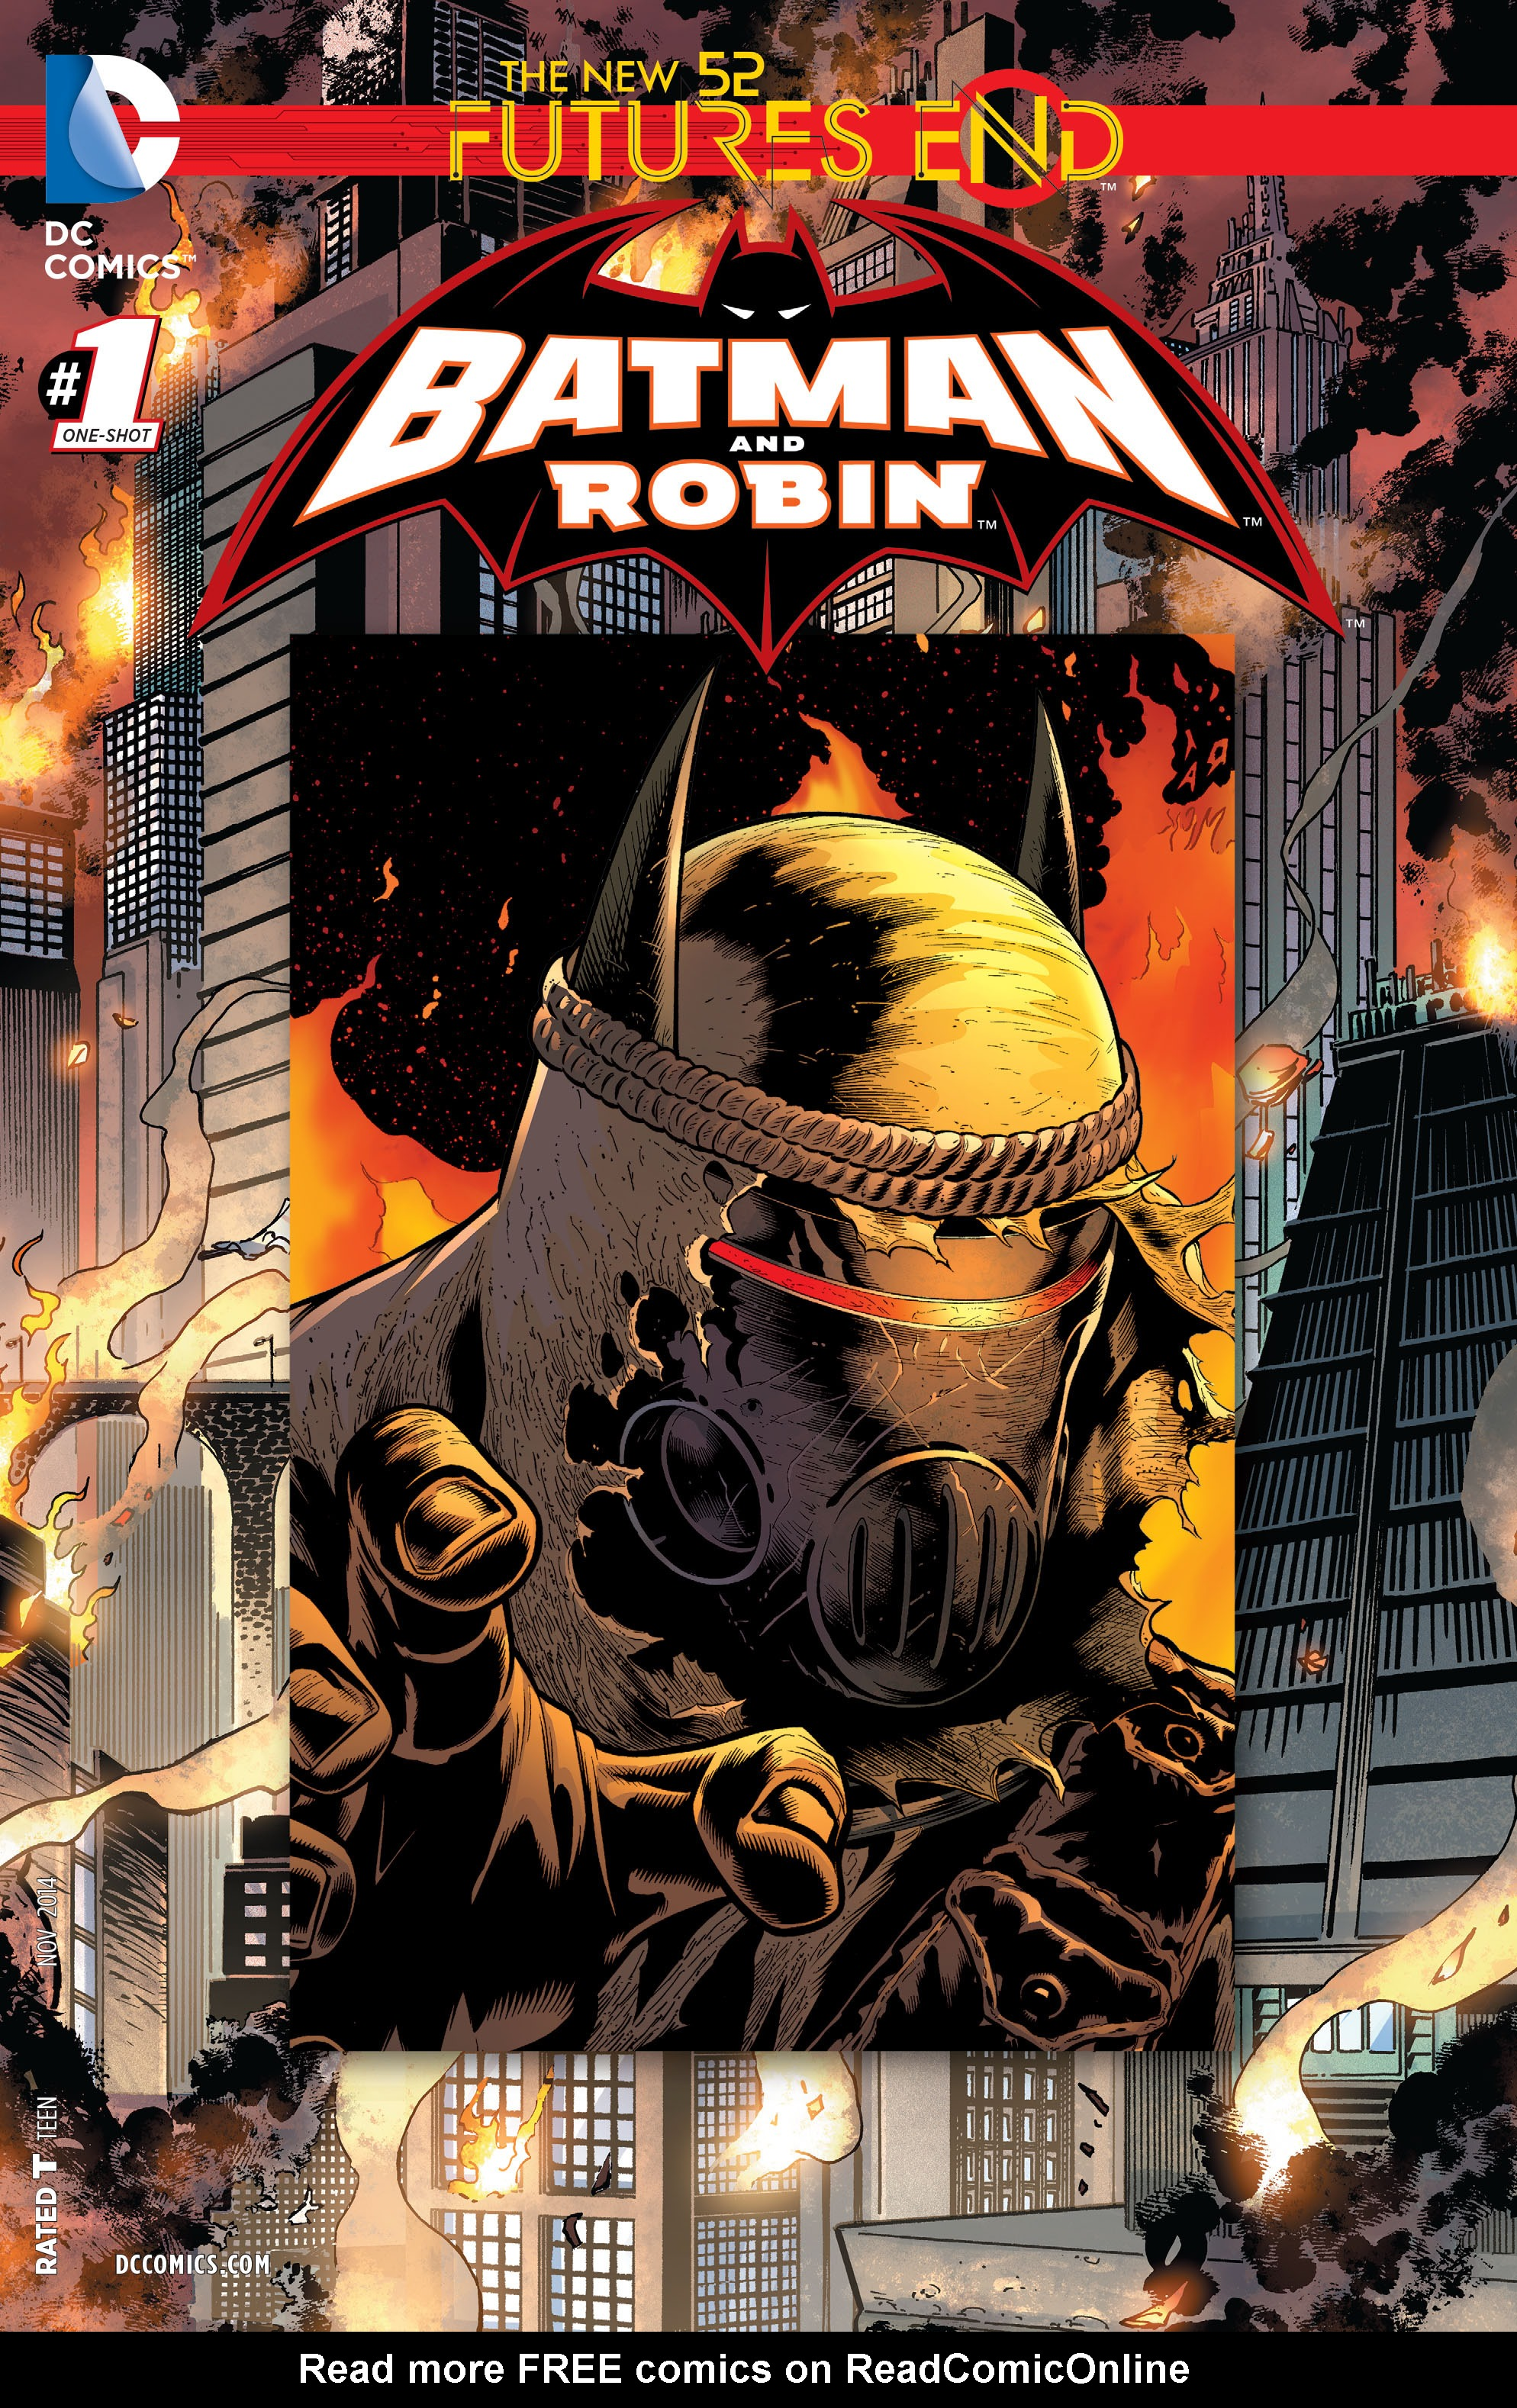 Batman and Robin: Futures End Full Page 1